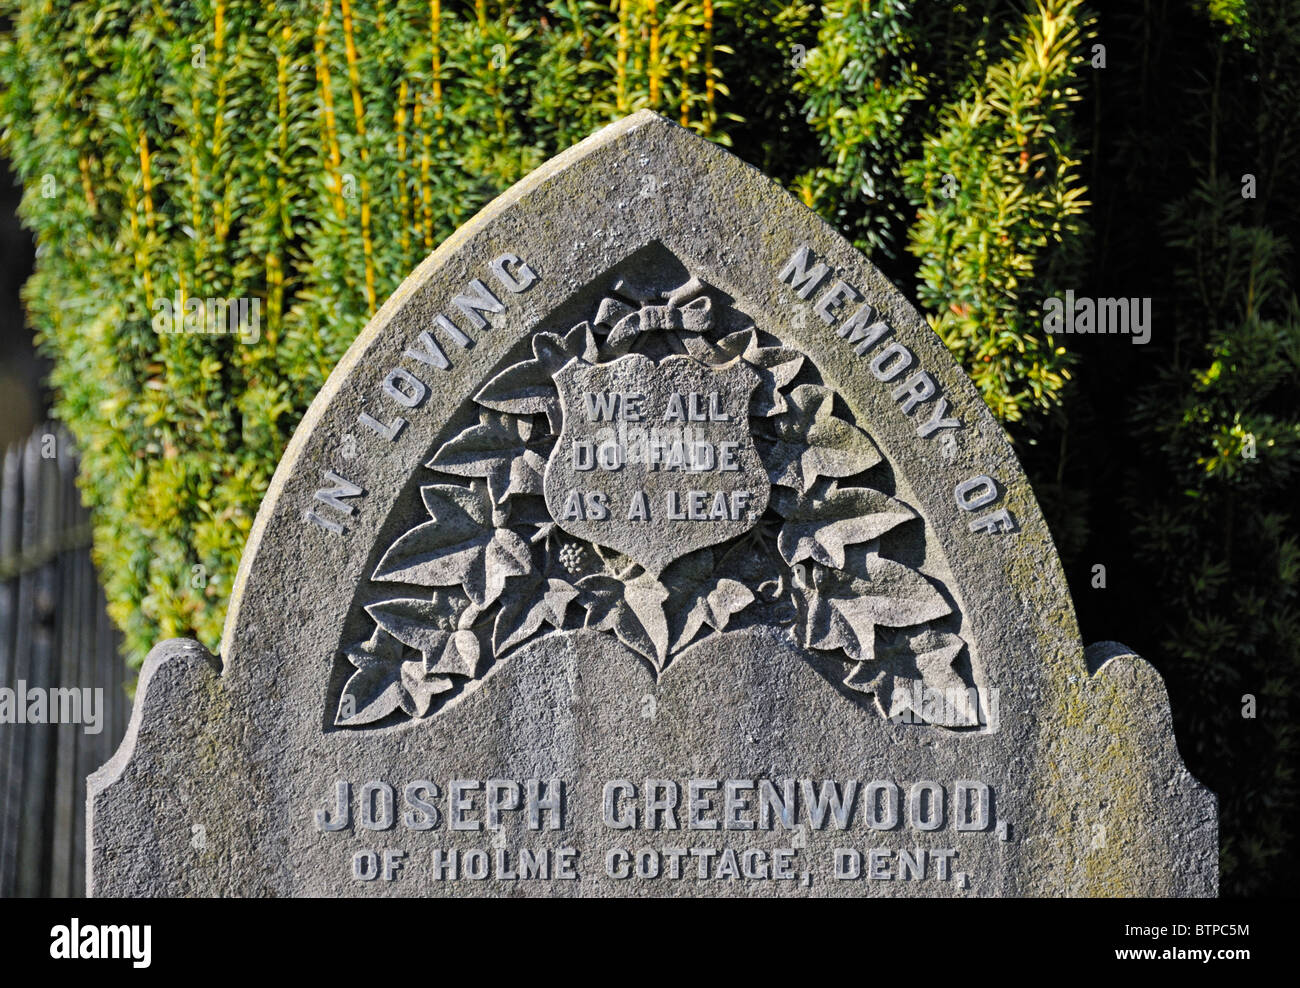 'WE ALL DO FADE AS A LEAF', inscription on gravestone. Church of Saint Andrew, Dent,  Dentdale, Yorkshire - Stock Image